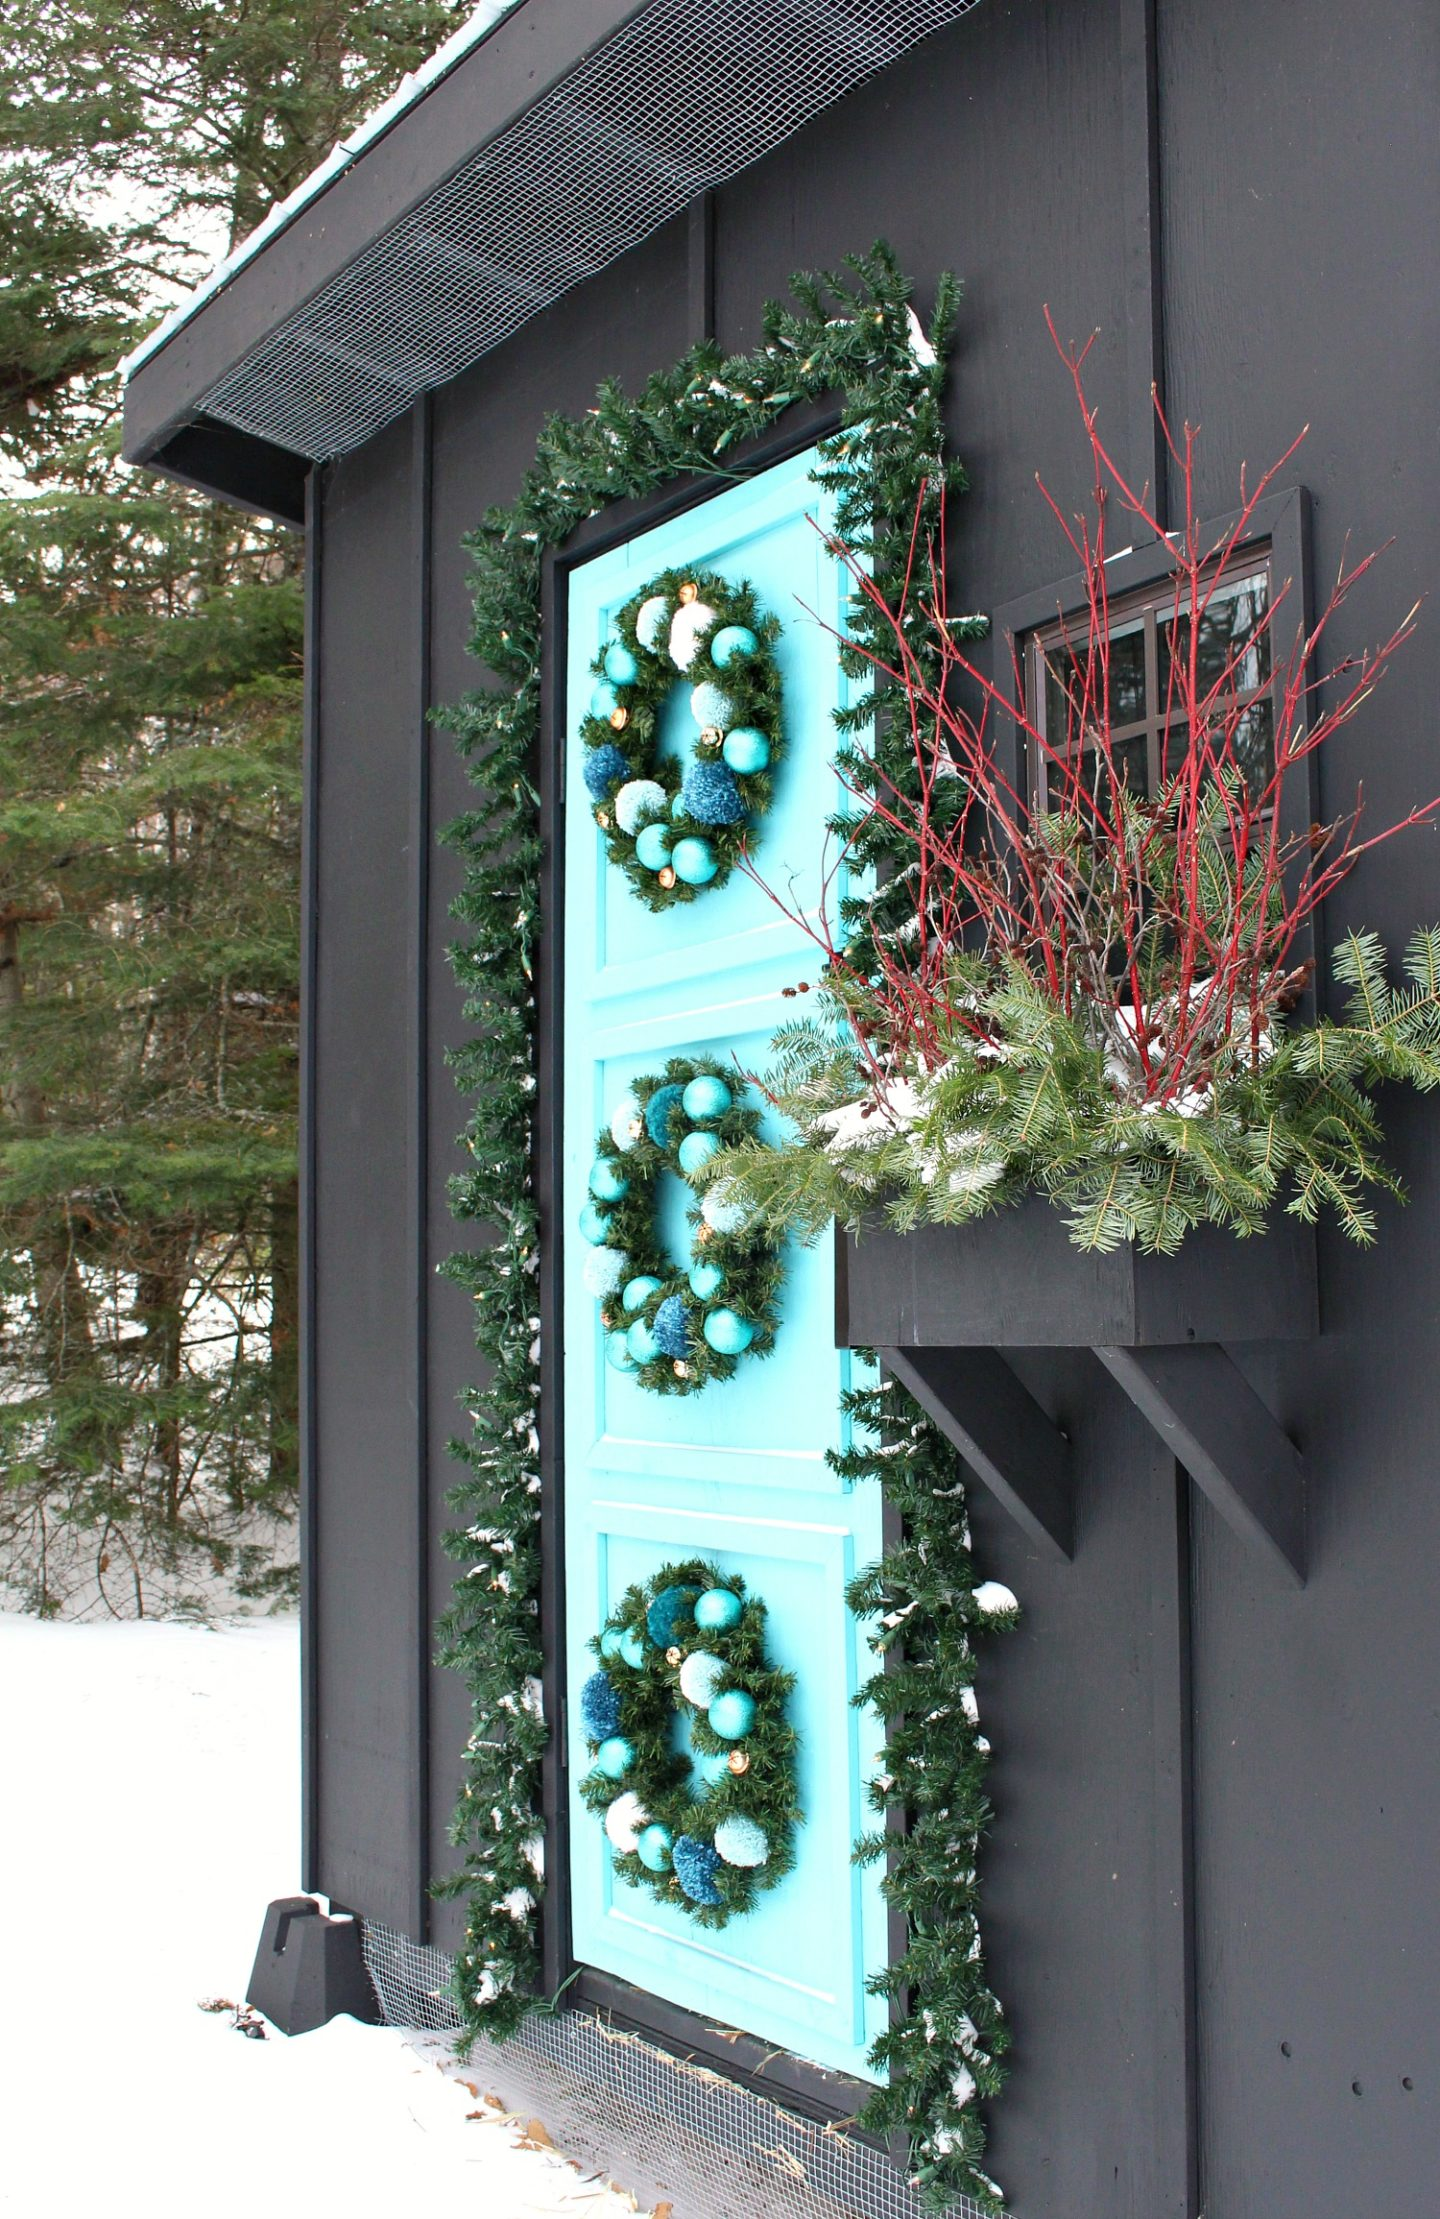 How to Make a Winter Window Box | Easy DIY Winter Window Box Outdoors